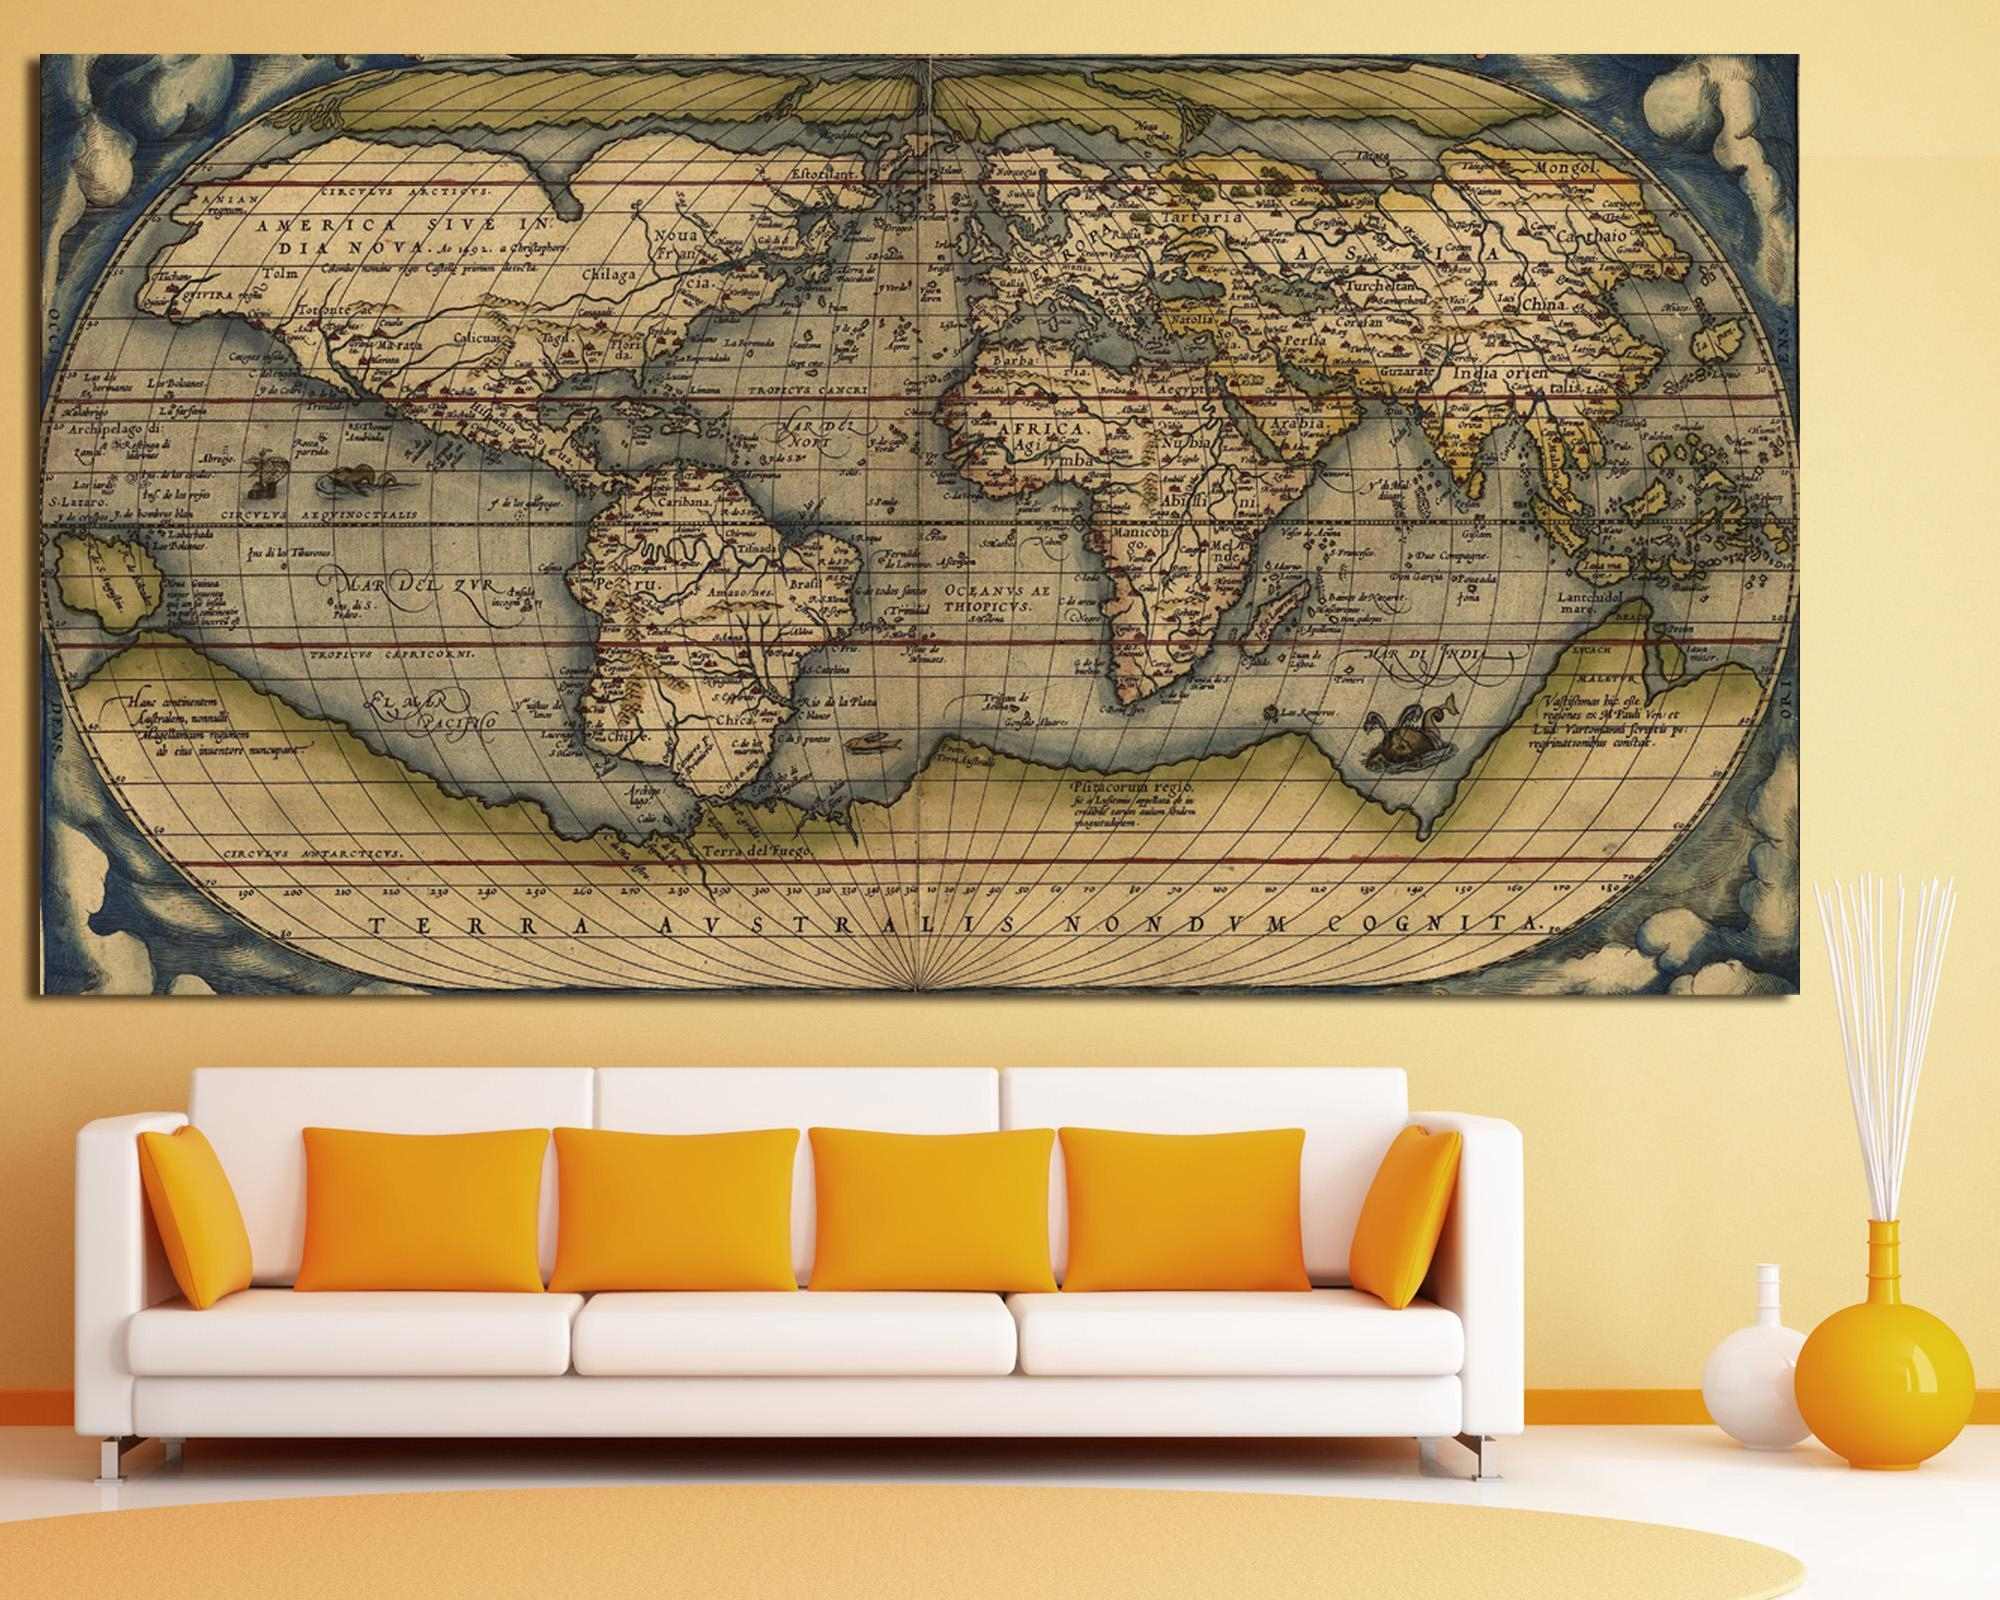 Texelprintart Studio – Canvas Wall Art Print For Home Decoration Inside Large Vintage Wall Art (Image 13 of 20)